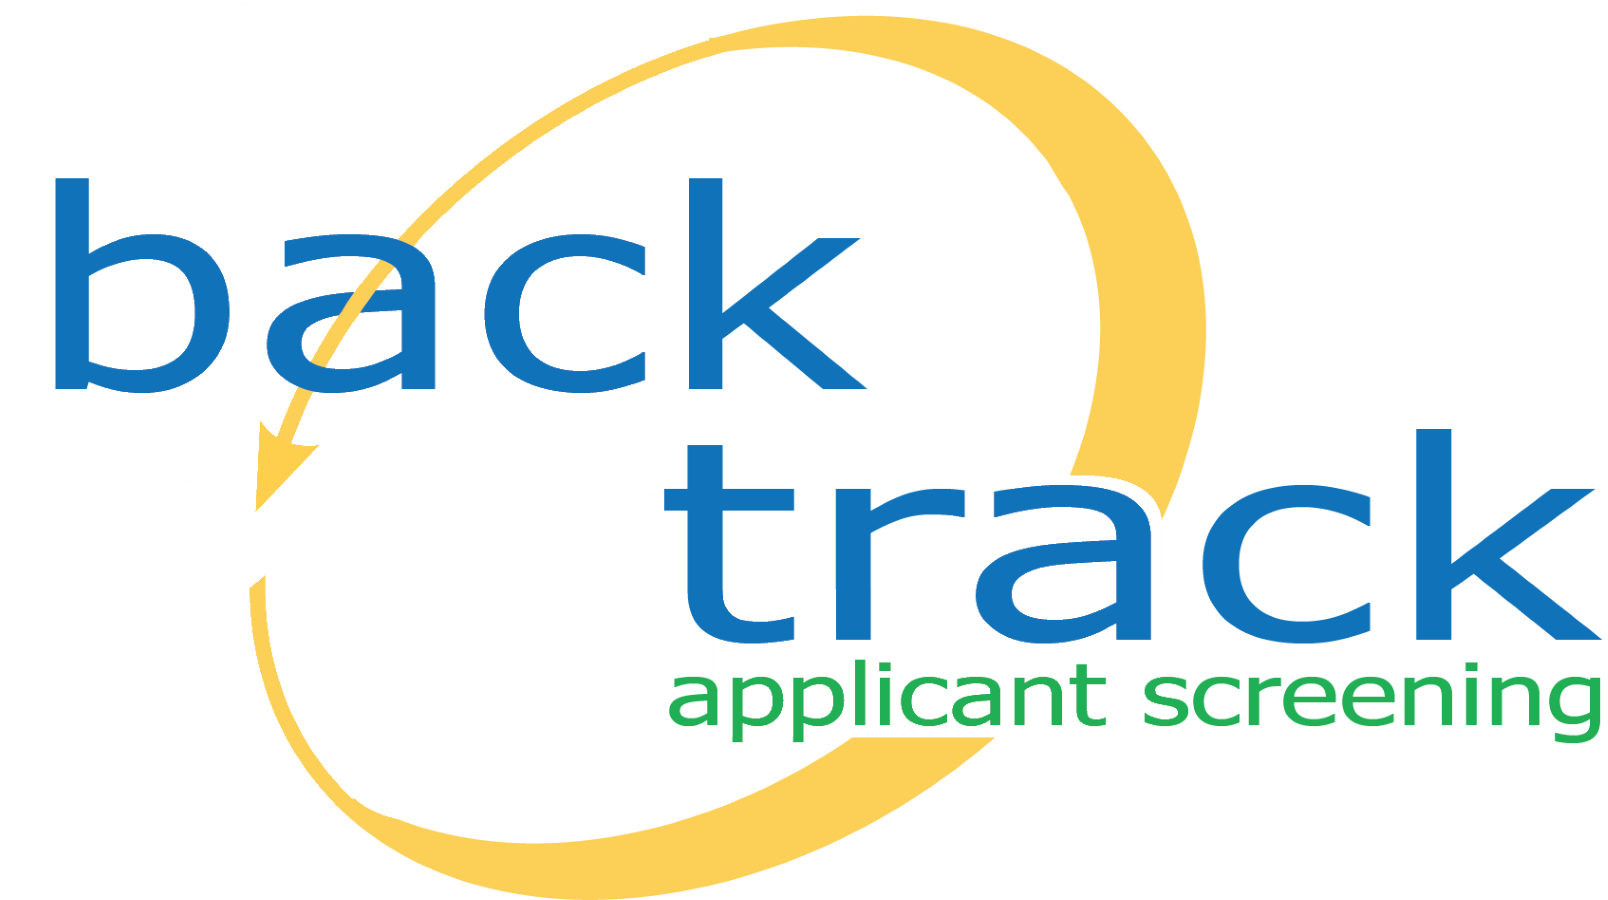 Back Track Screening, LLC